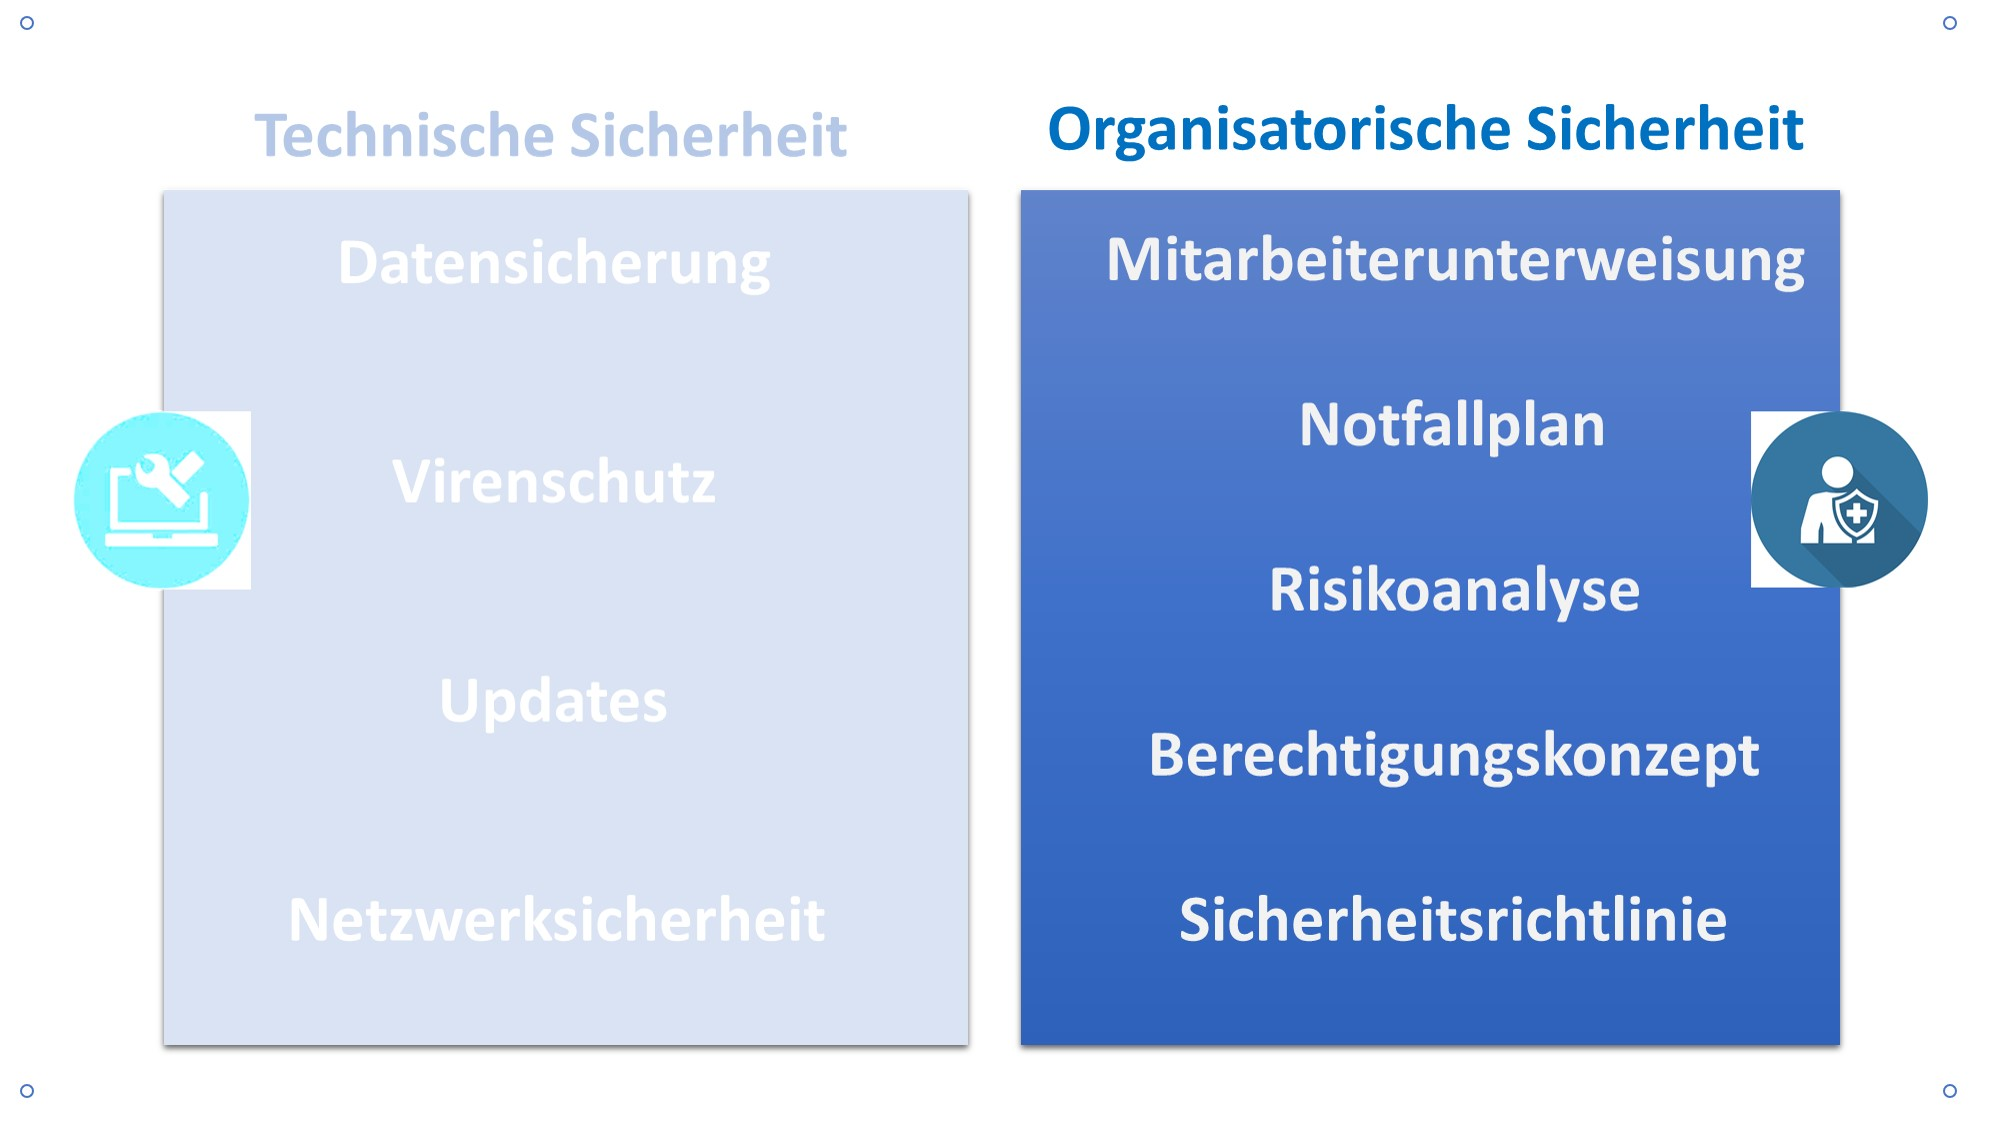 IT-Basisicherheit - organisatorische Sicherheit